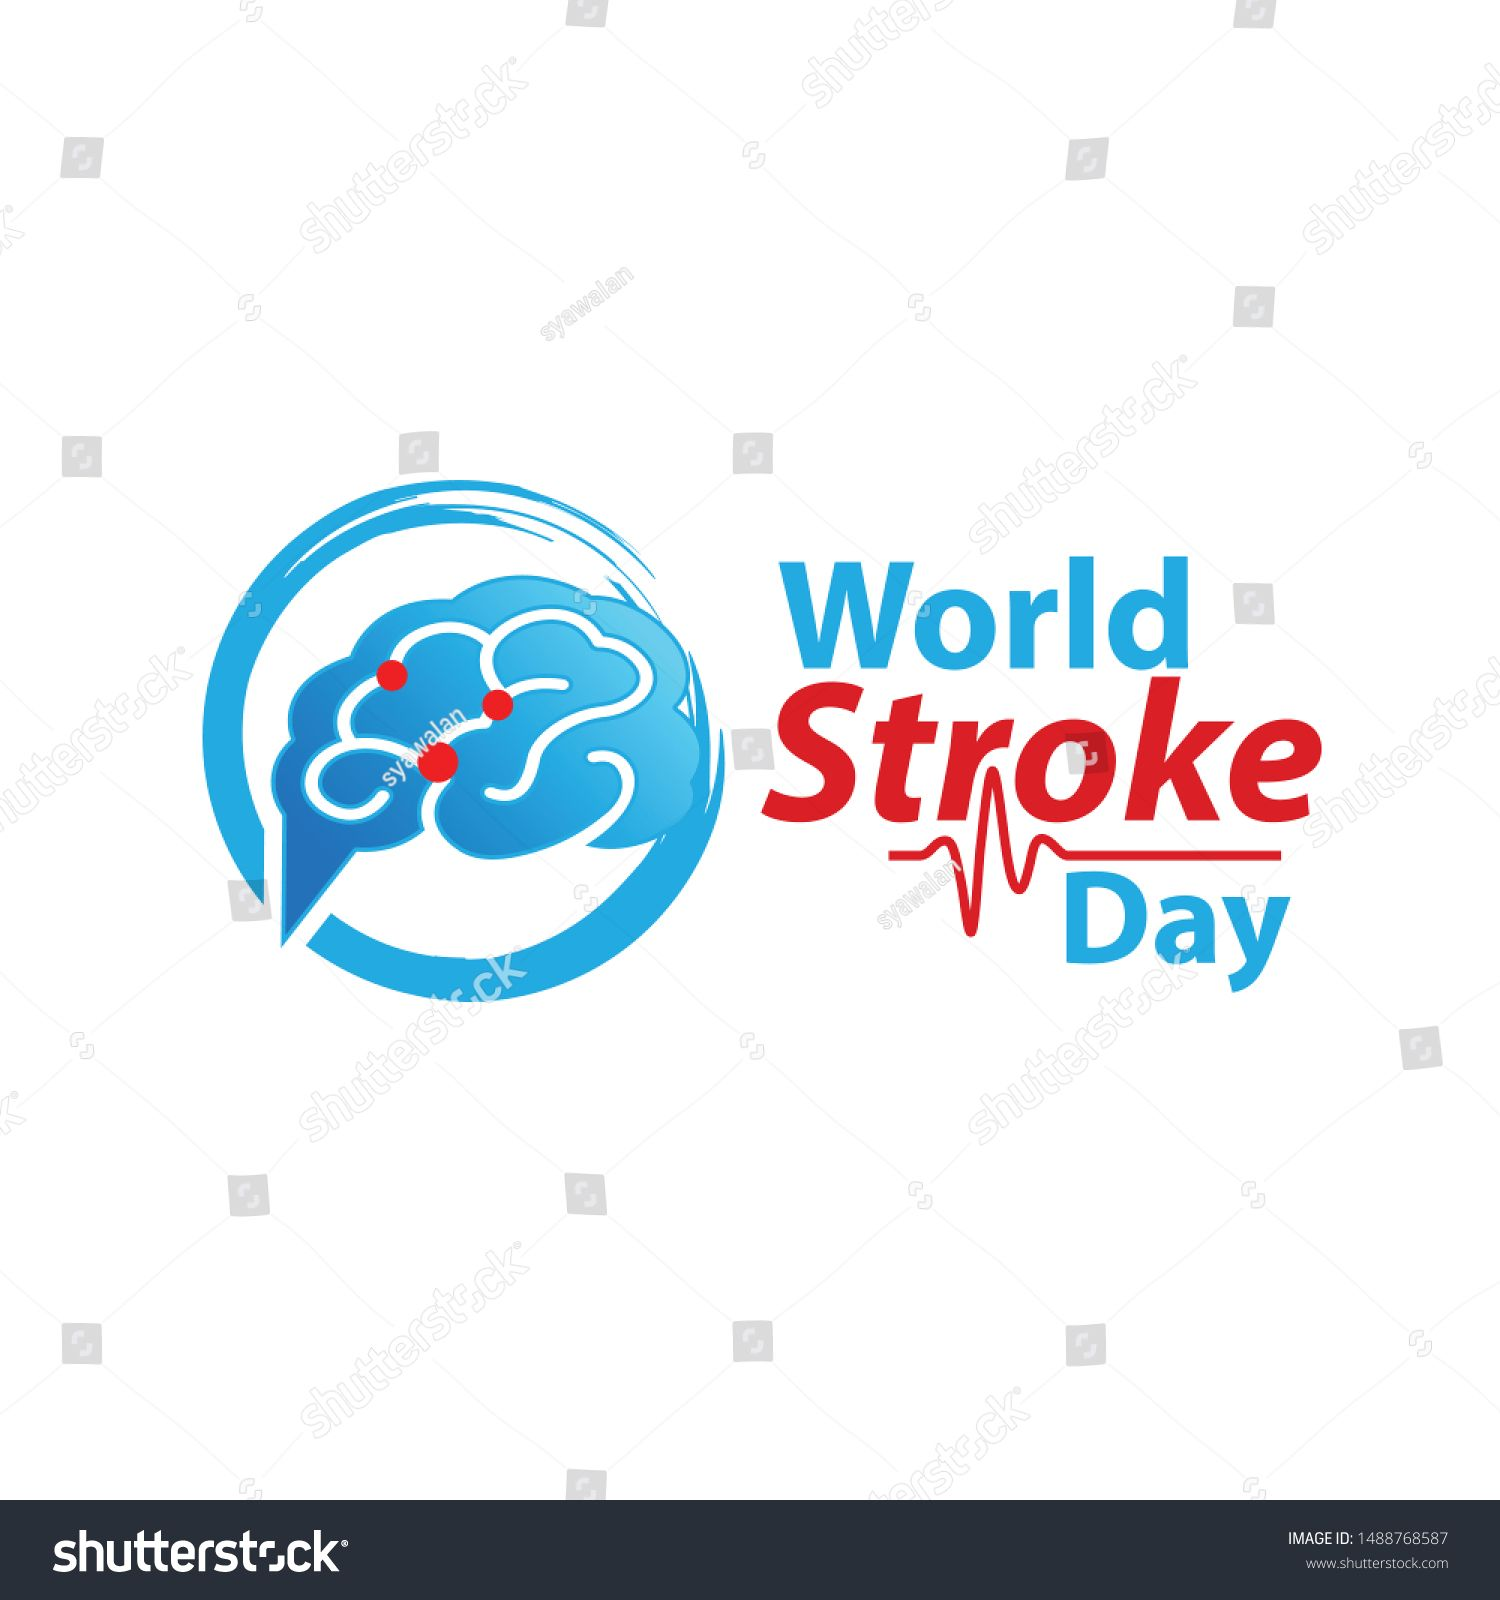 Vector Illustration Of World Stroke Day Health Care Campaign Ad Affiliate World Stroke Vector Illustrati World Stroke Day Health Care Home Decor Decals